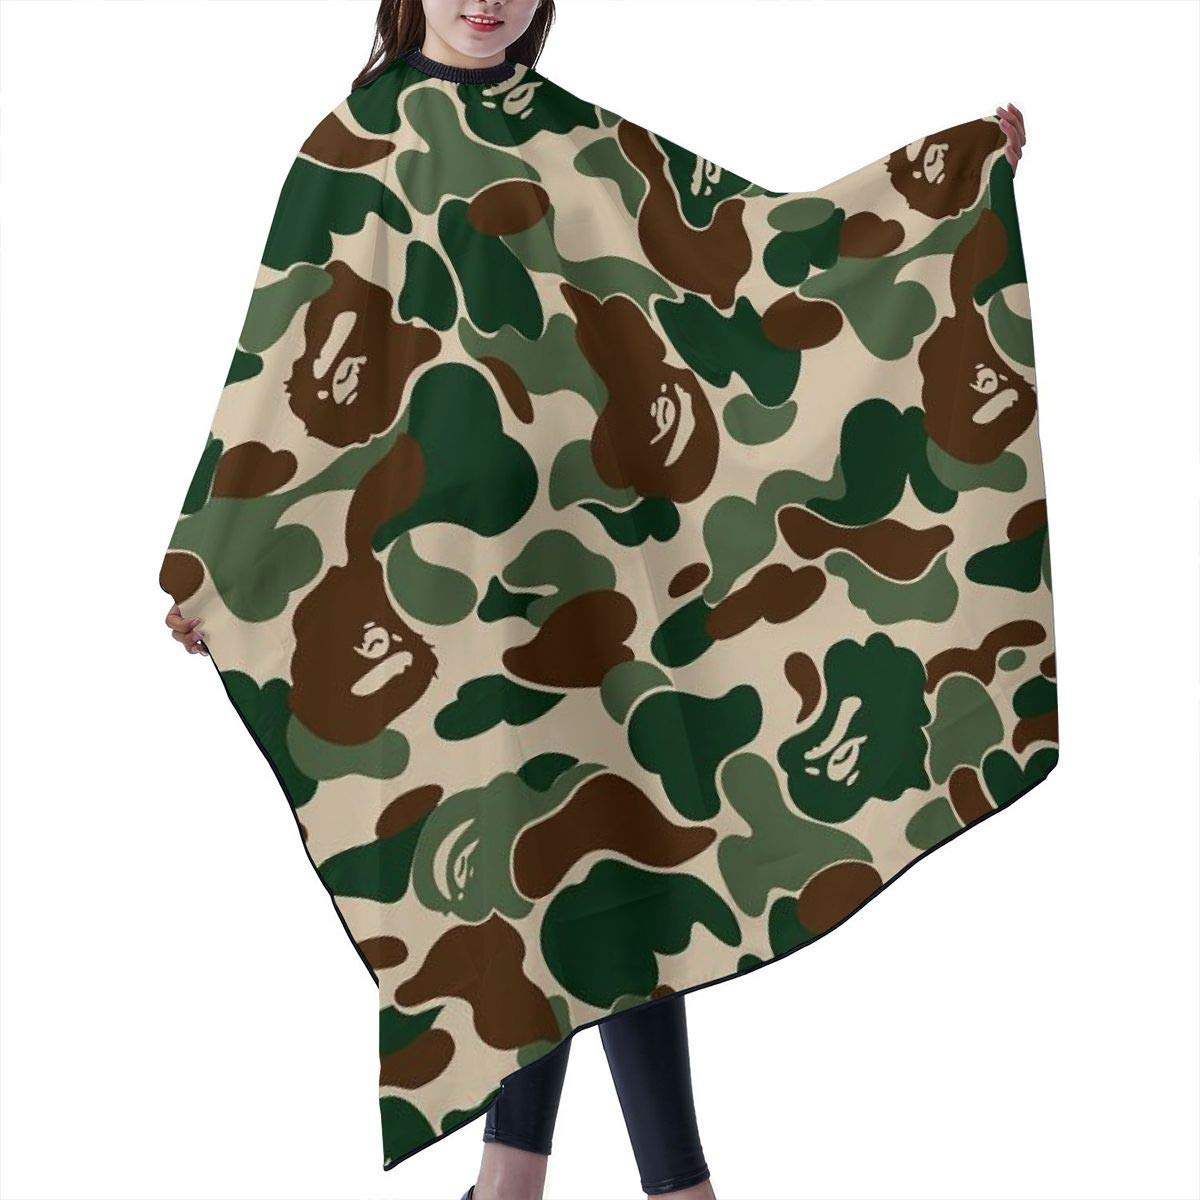 STWINW Professional Barber Supplies Tool Bape Camo Pattern Cape Cover Cloak Hair Dyed Hair Waterproof Cloth Anti-Static Hairdressing Haircut Apron Hair Dressing Gown Cape